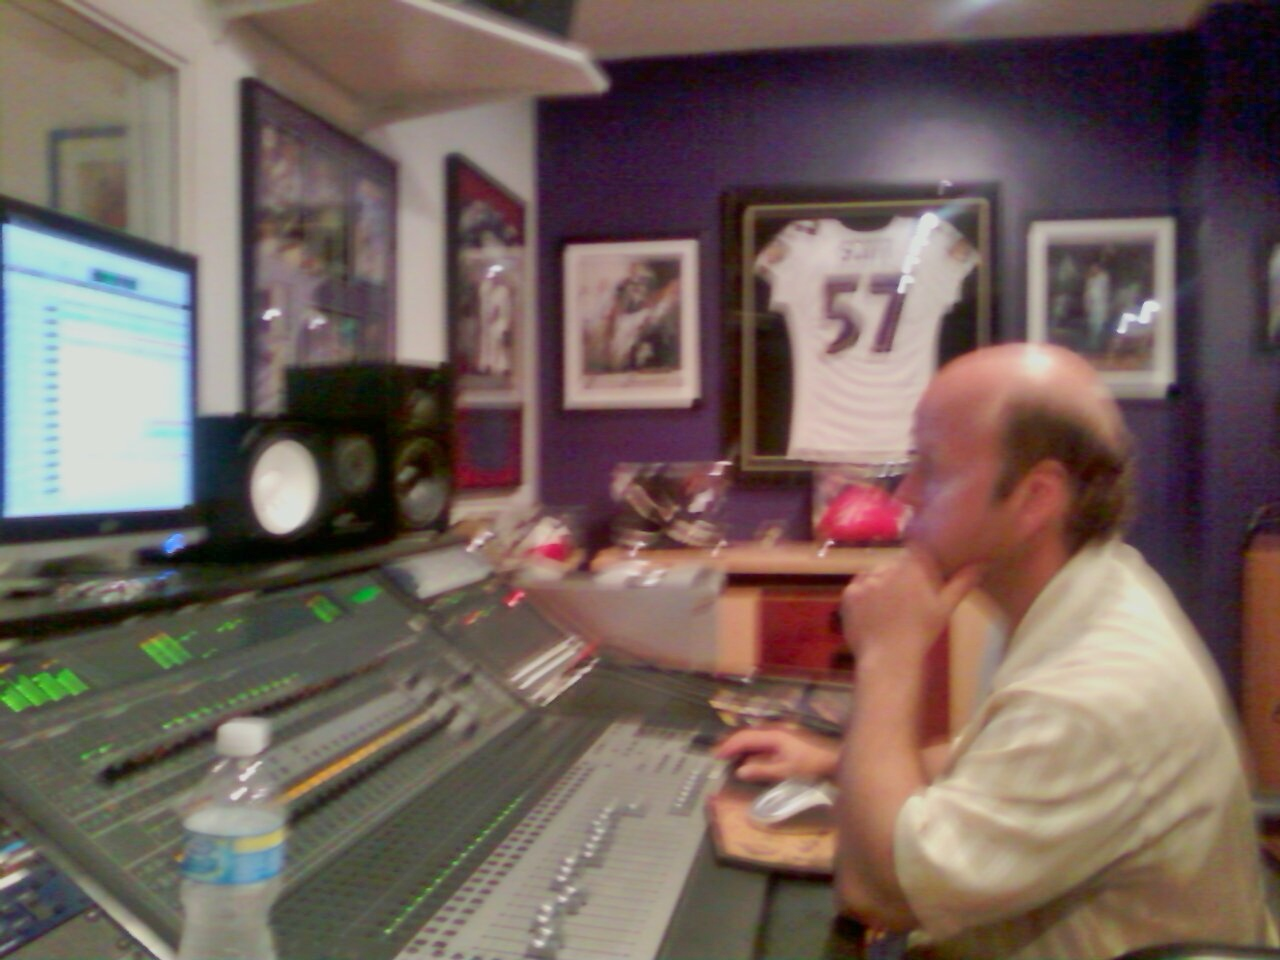 Jeff Order, our Producer